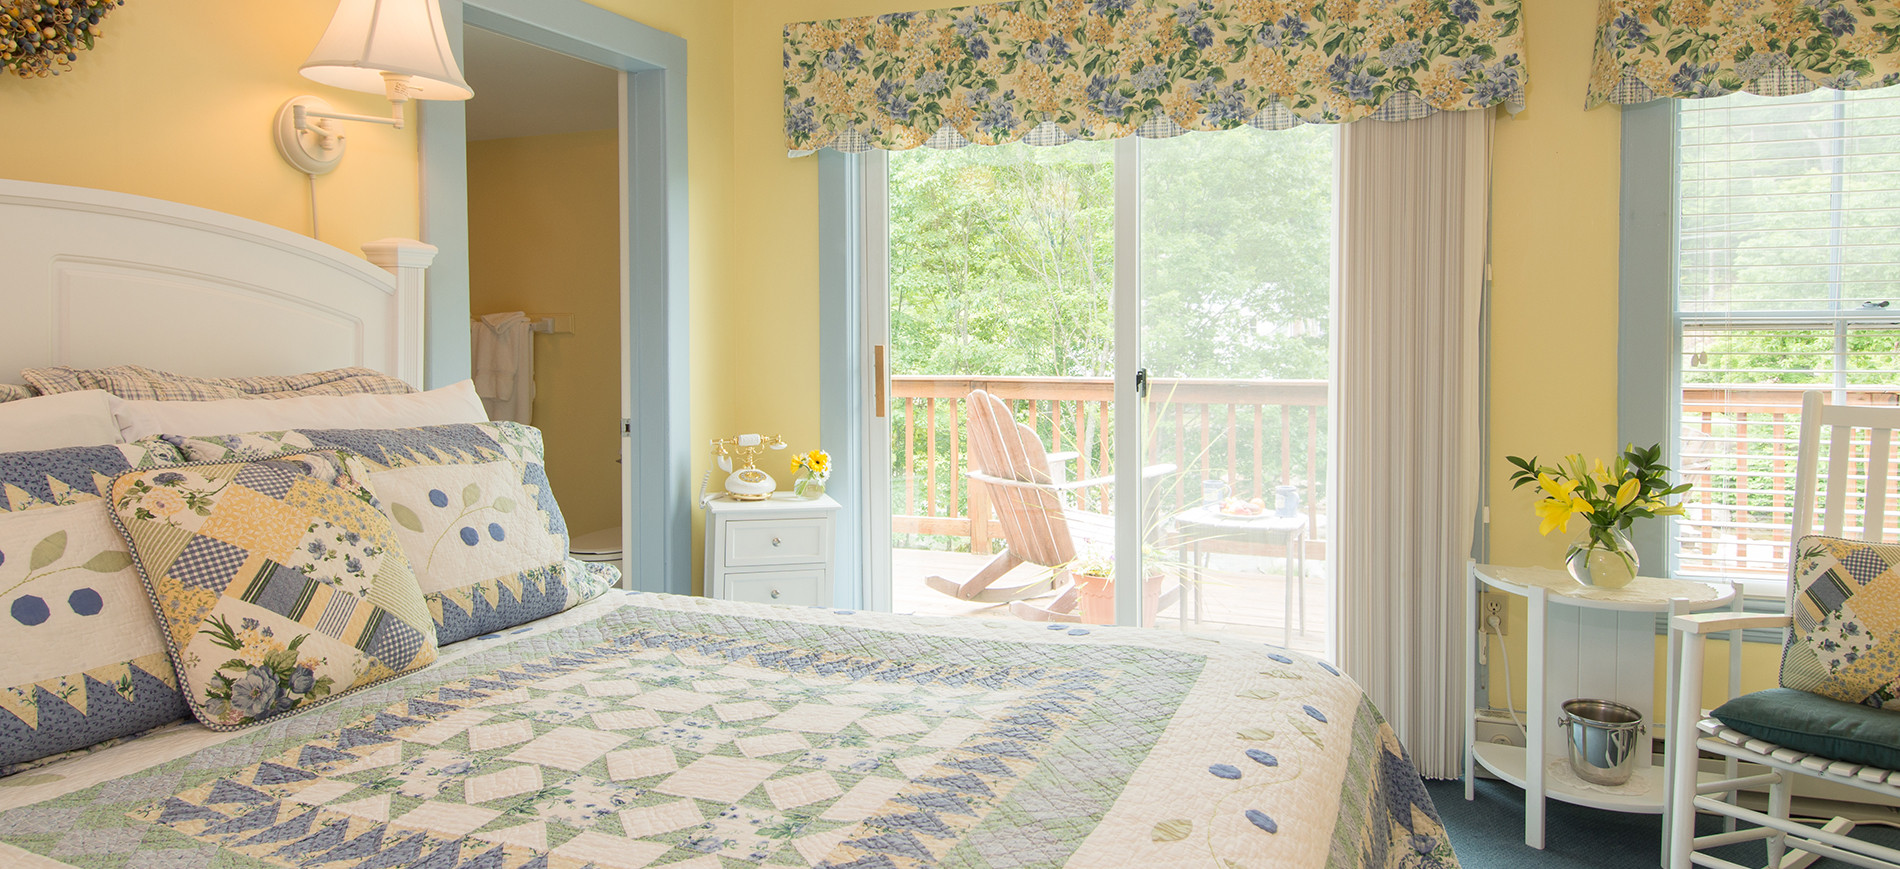 Guest room with yellow walls, queen bed with white, yellow, blue bedding, sliding glass door with Adirondack chairs on balcony, white table, white rocker